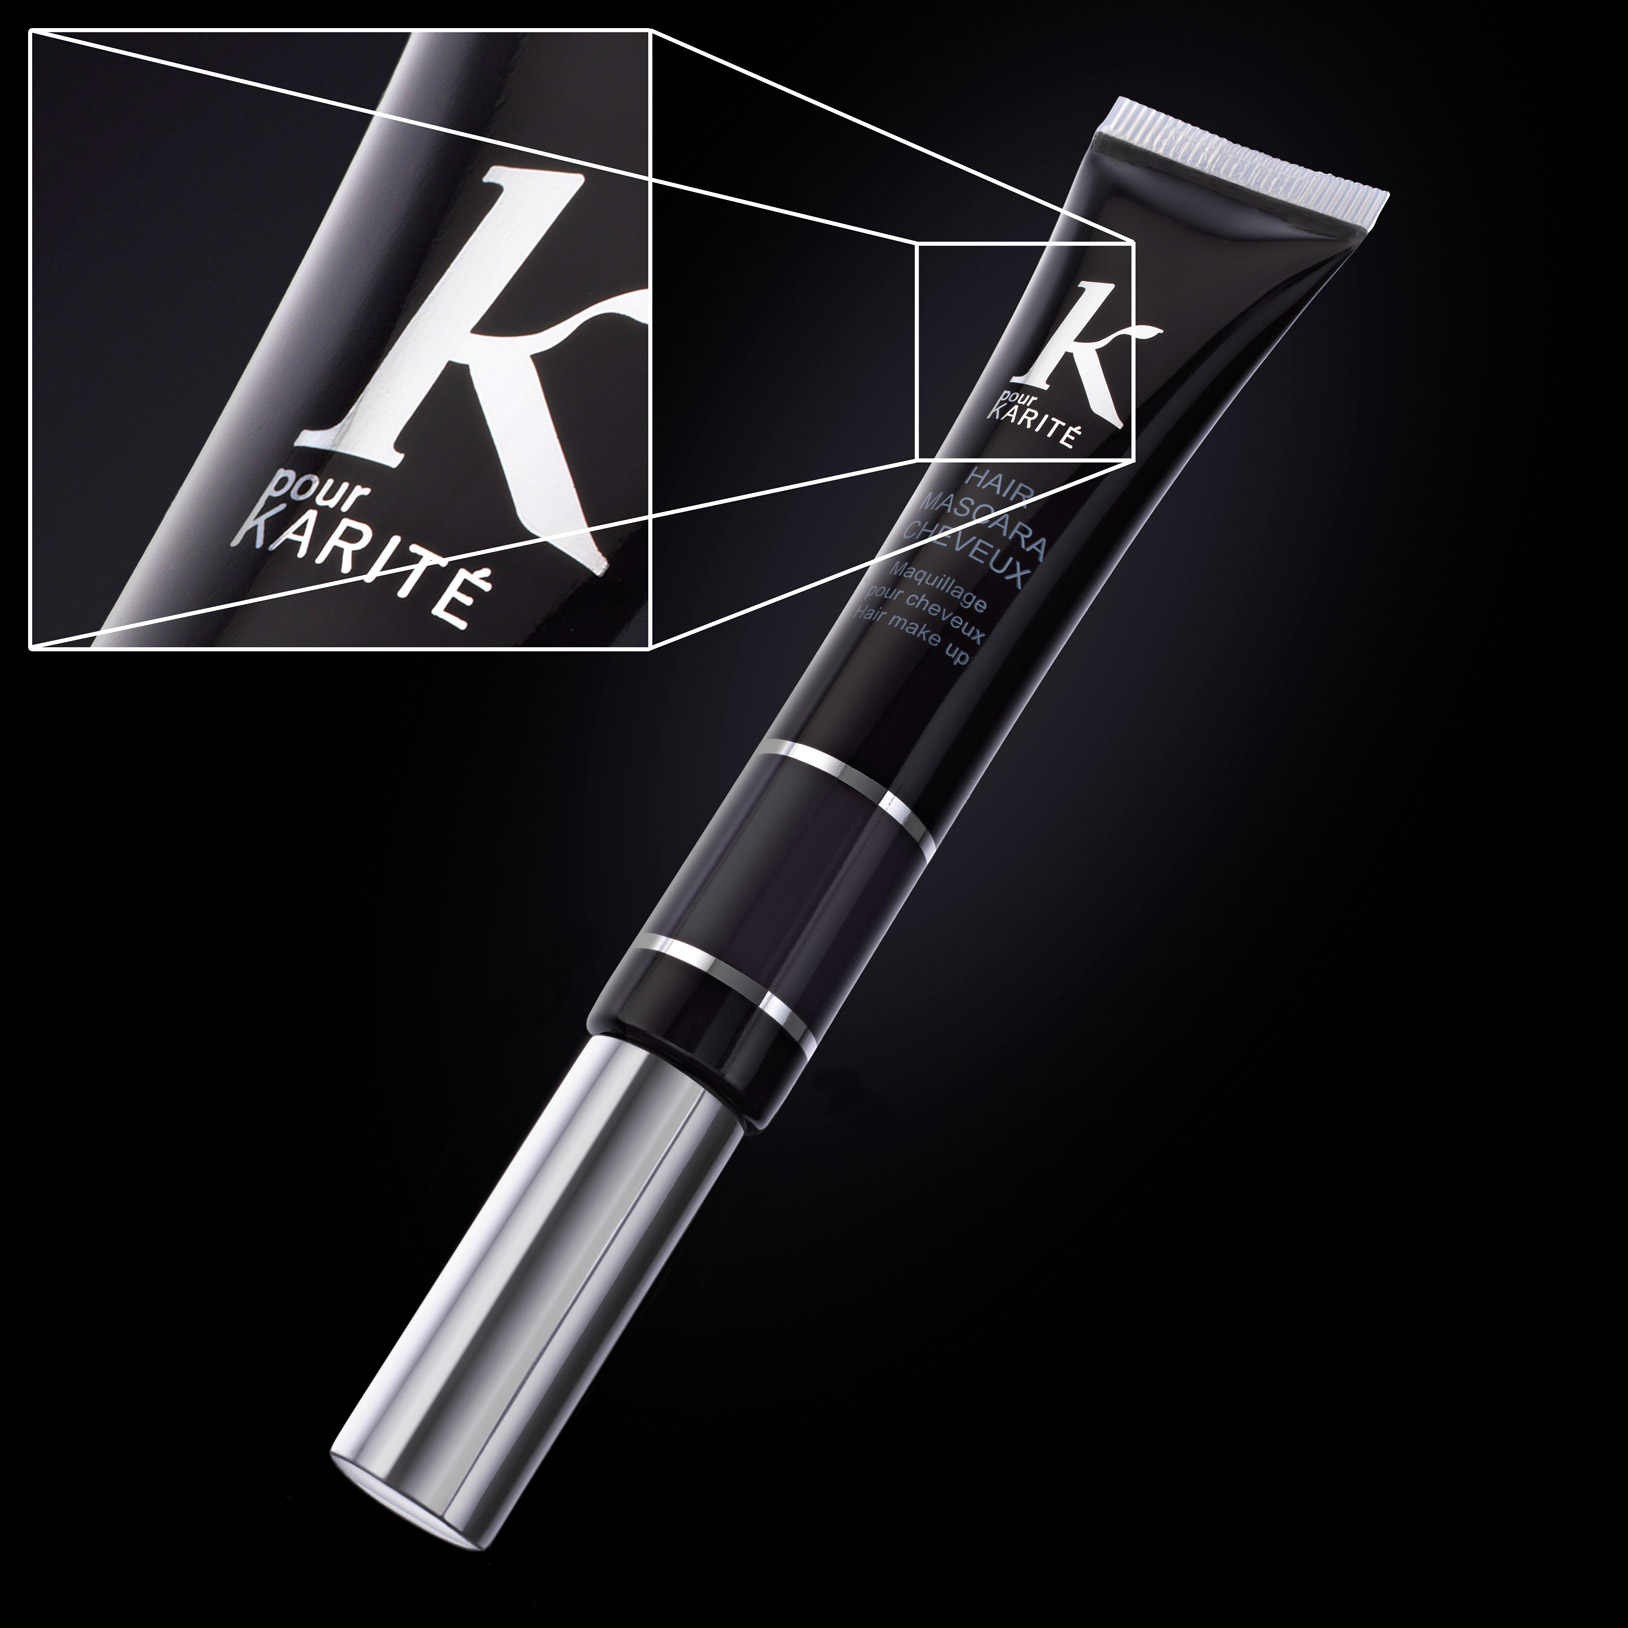 Example of cosmetic product with rim lighting